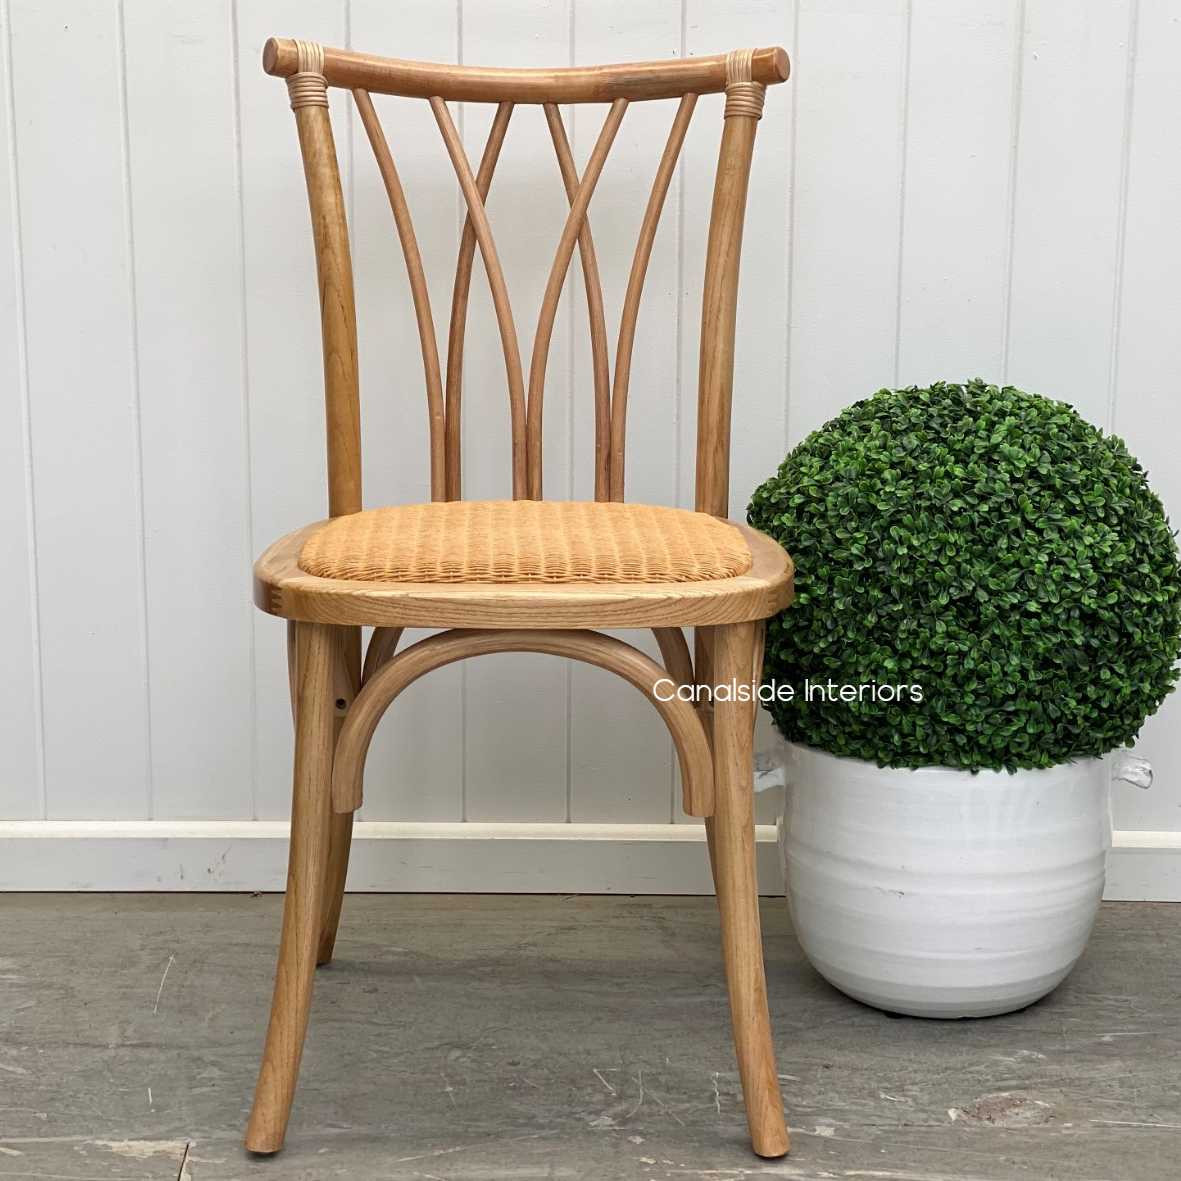 Botanica Chair Natural Dining, CHAIRS, CAFE FURNITURE, HAMPTONS Style, PLANTATION Style, CHAIRS Dining, CAFE FURNITURE Stools & Chairs, PLANTATION STYLE